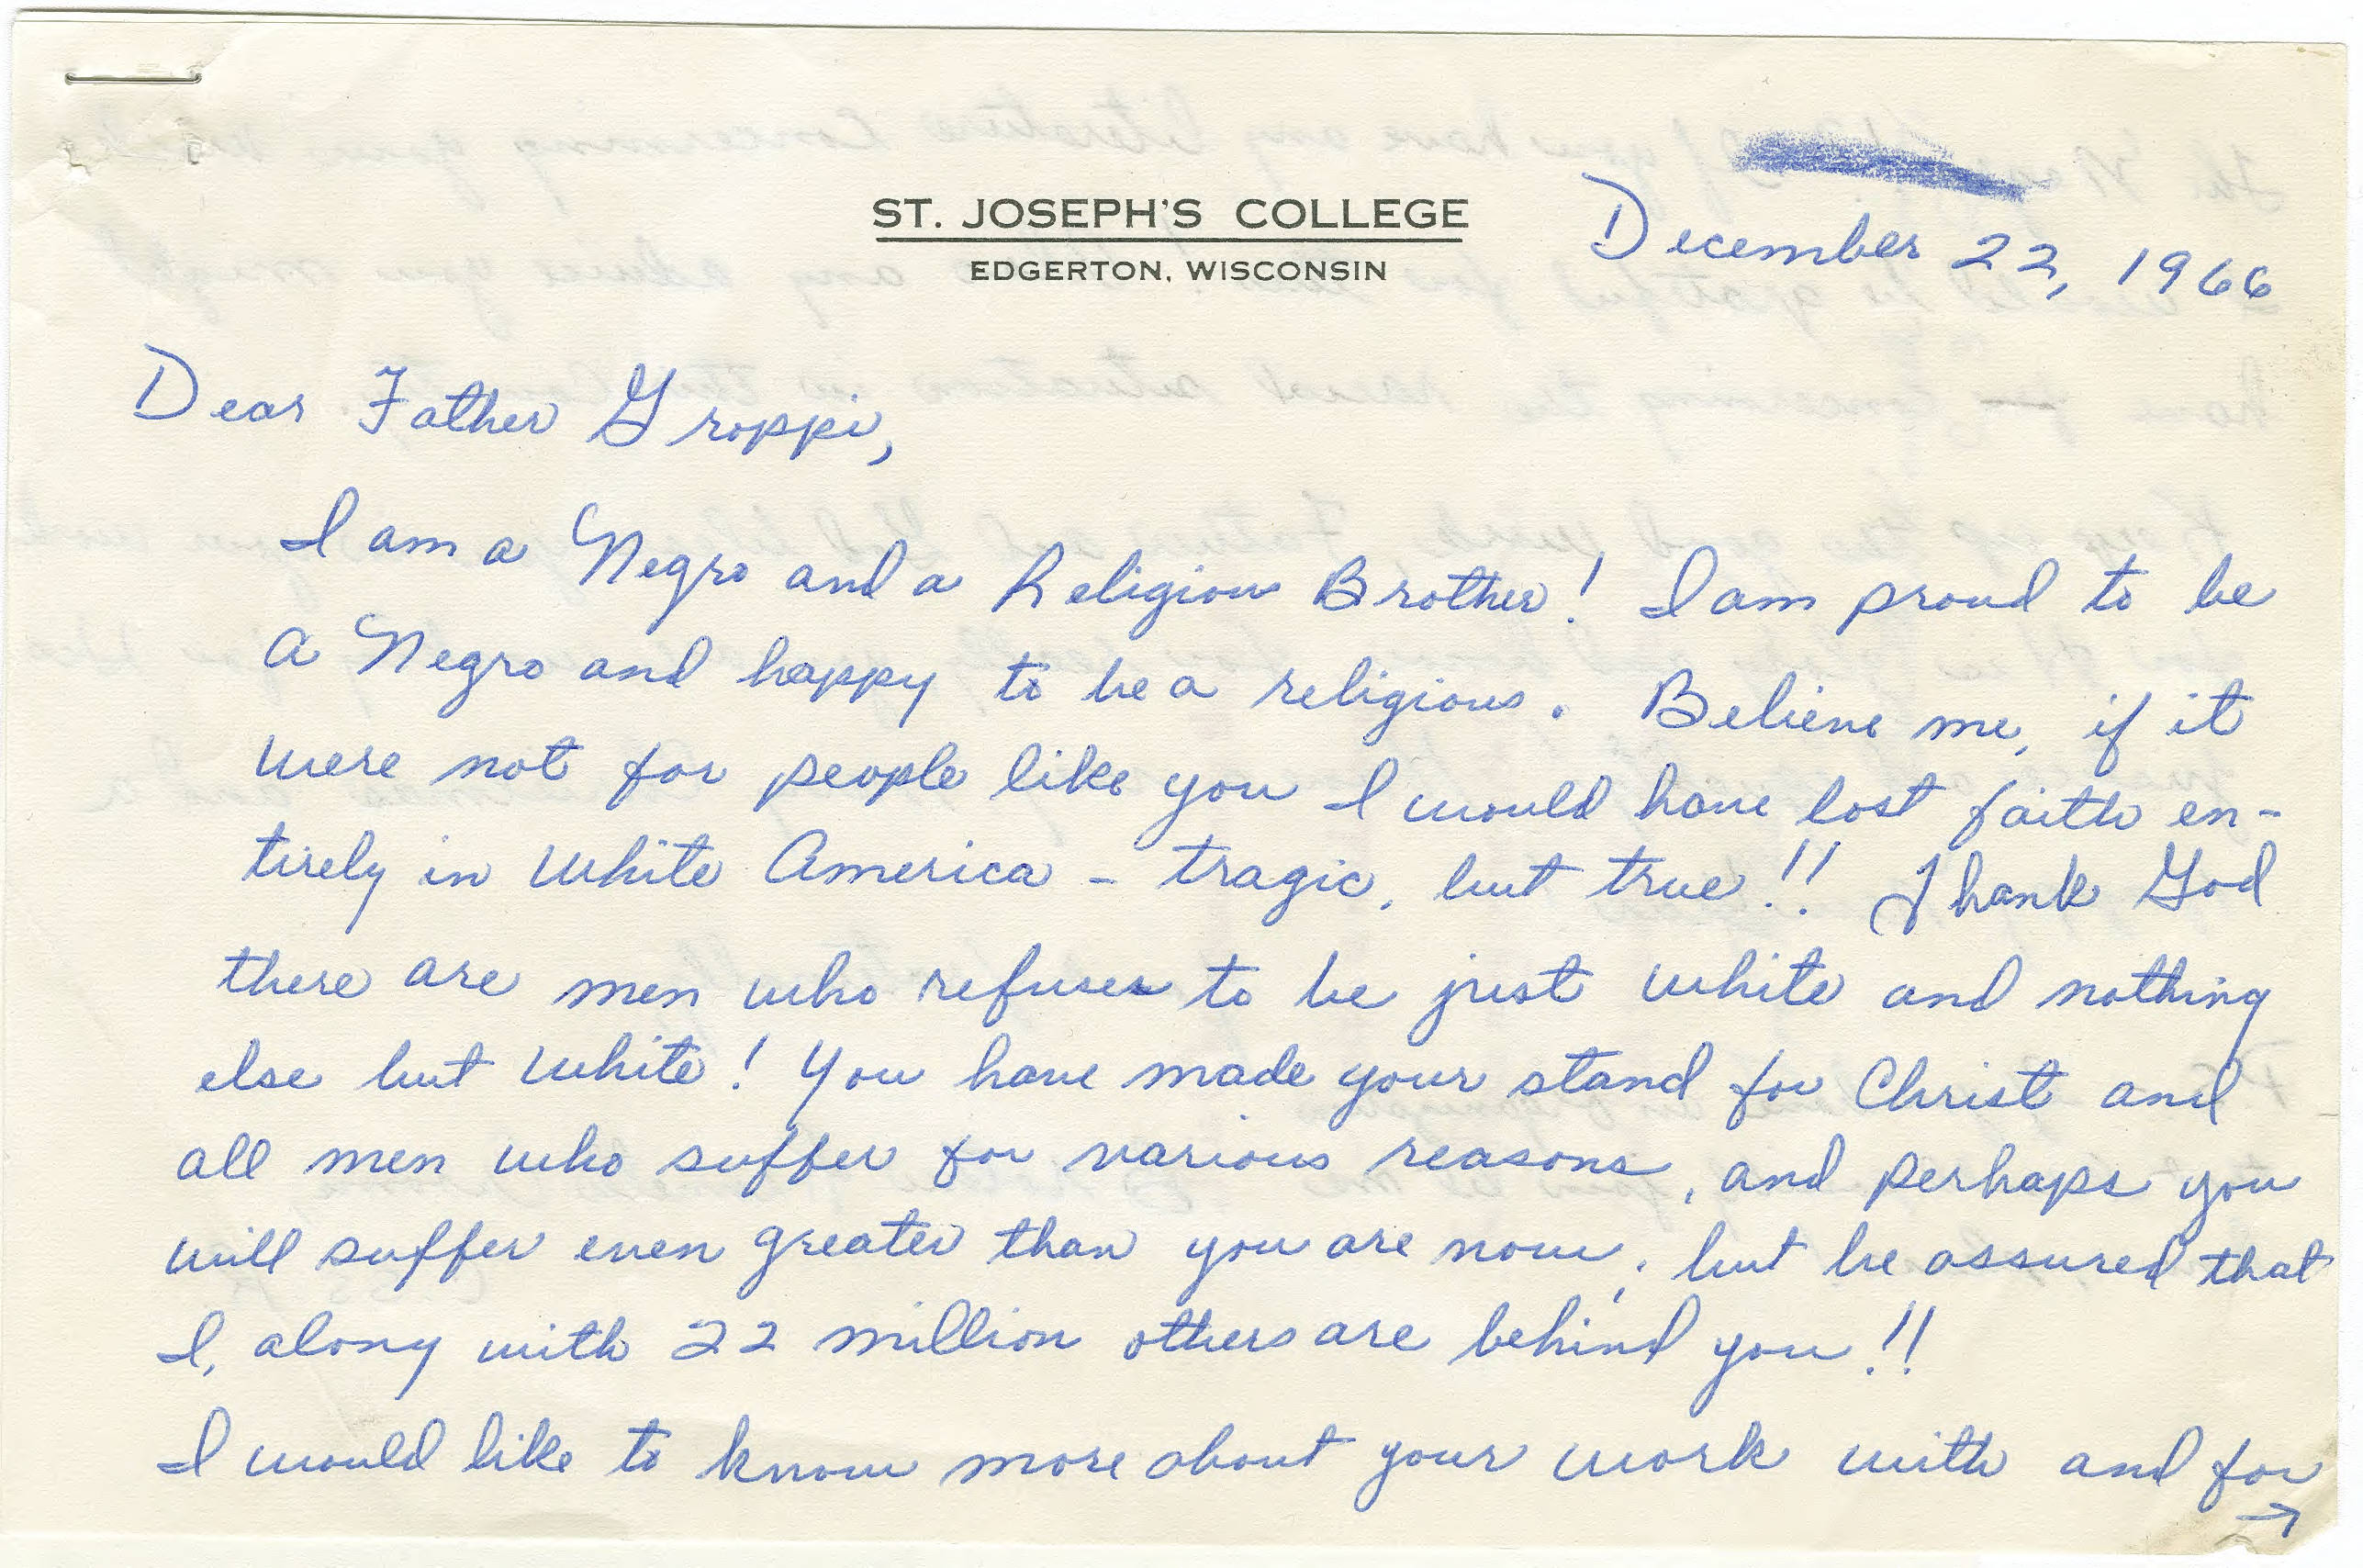 digital image of a letter written to Father James Groppi in 1966